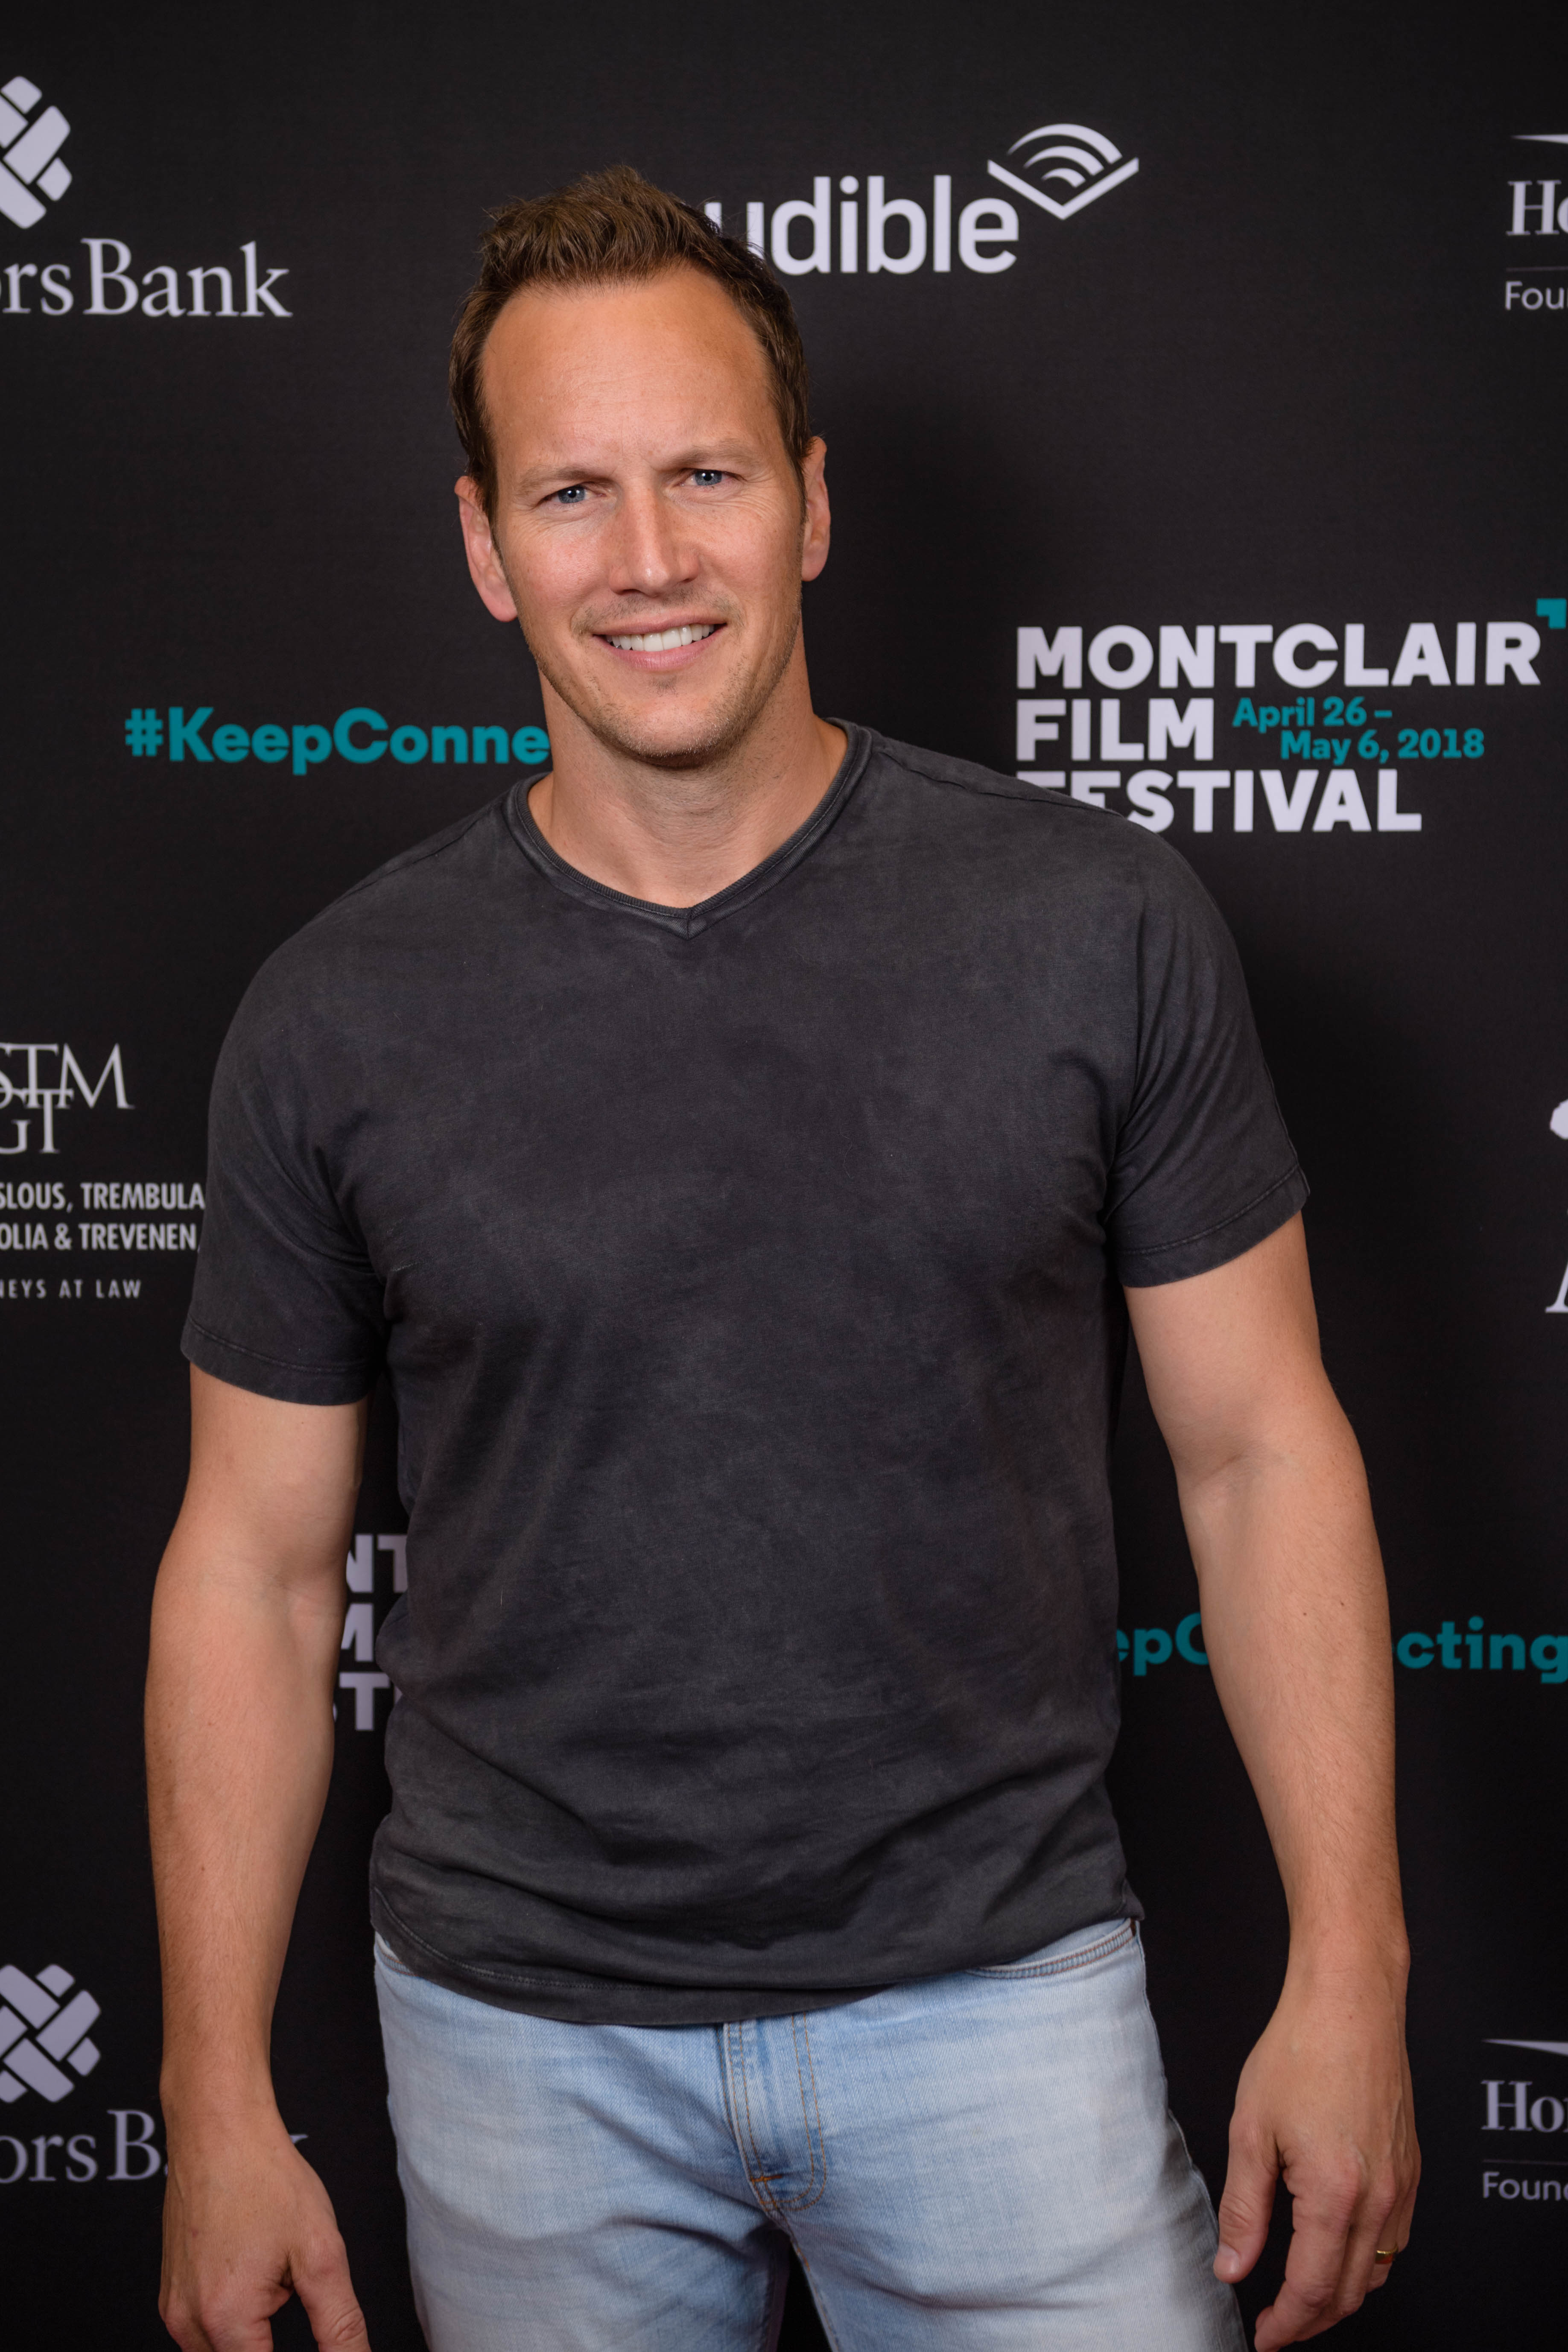 Patrick Wilson at the Montclair Film Festival 2018 I Photo:Wikimedia Commons/ Creative Commons-Attribution 2.0 Generic